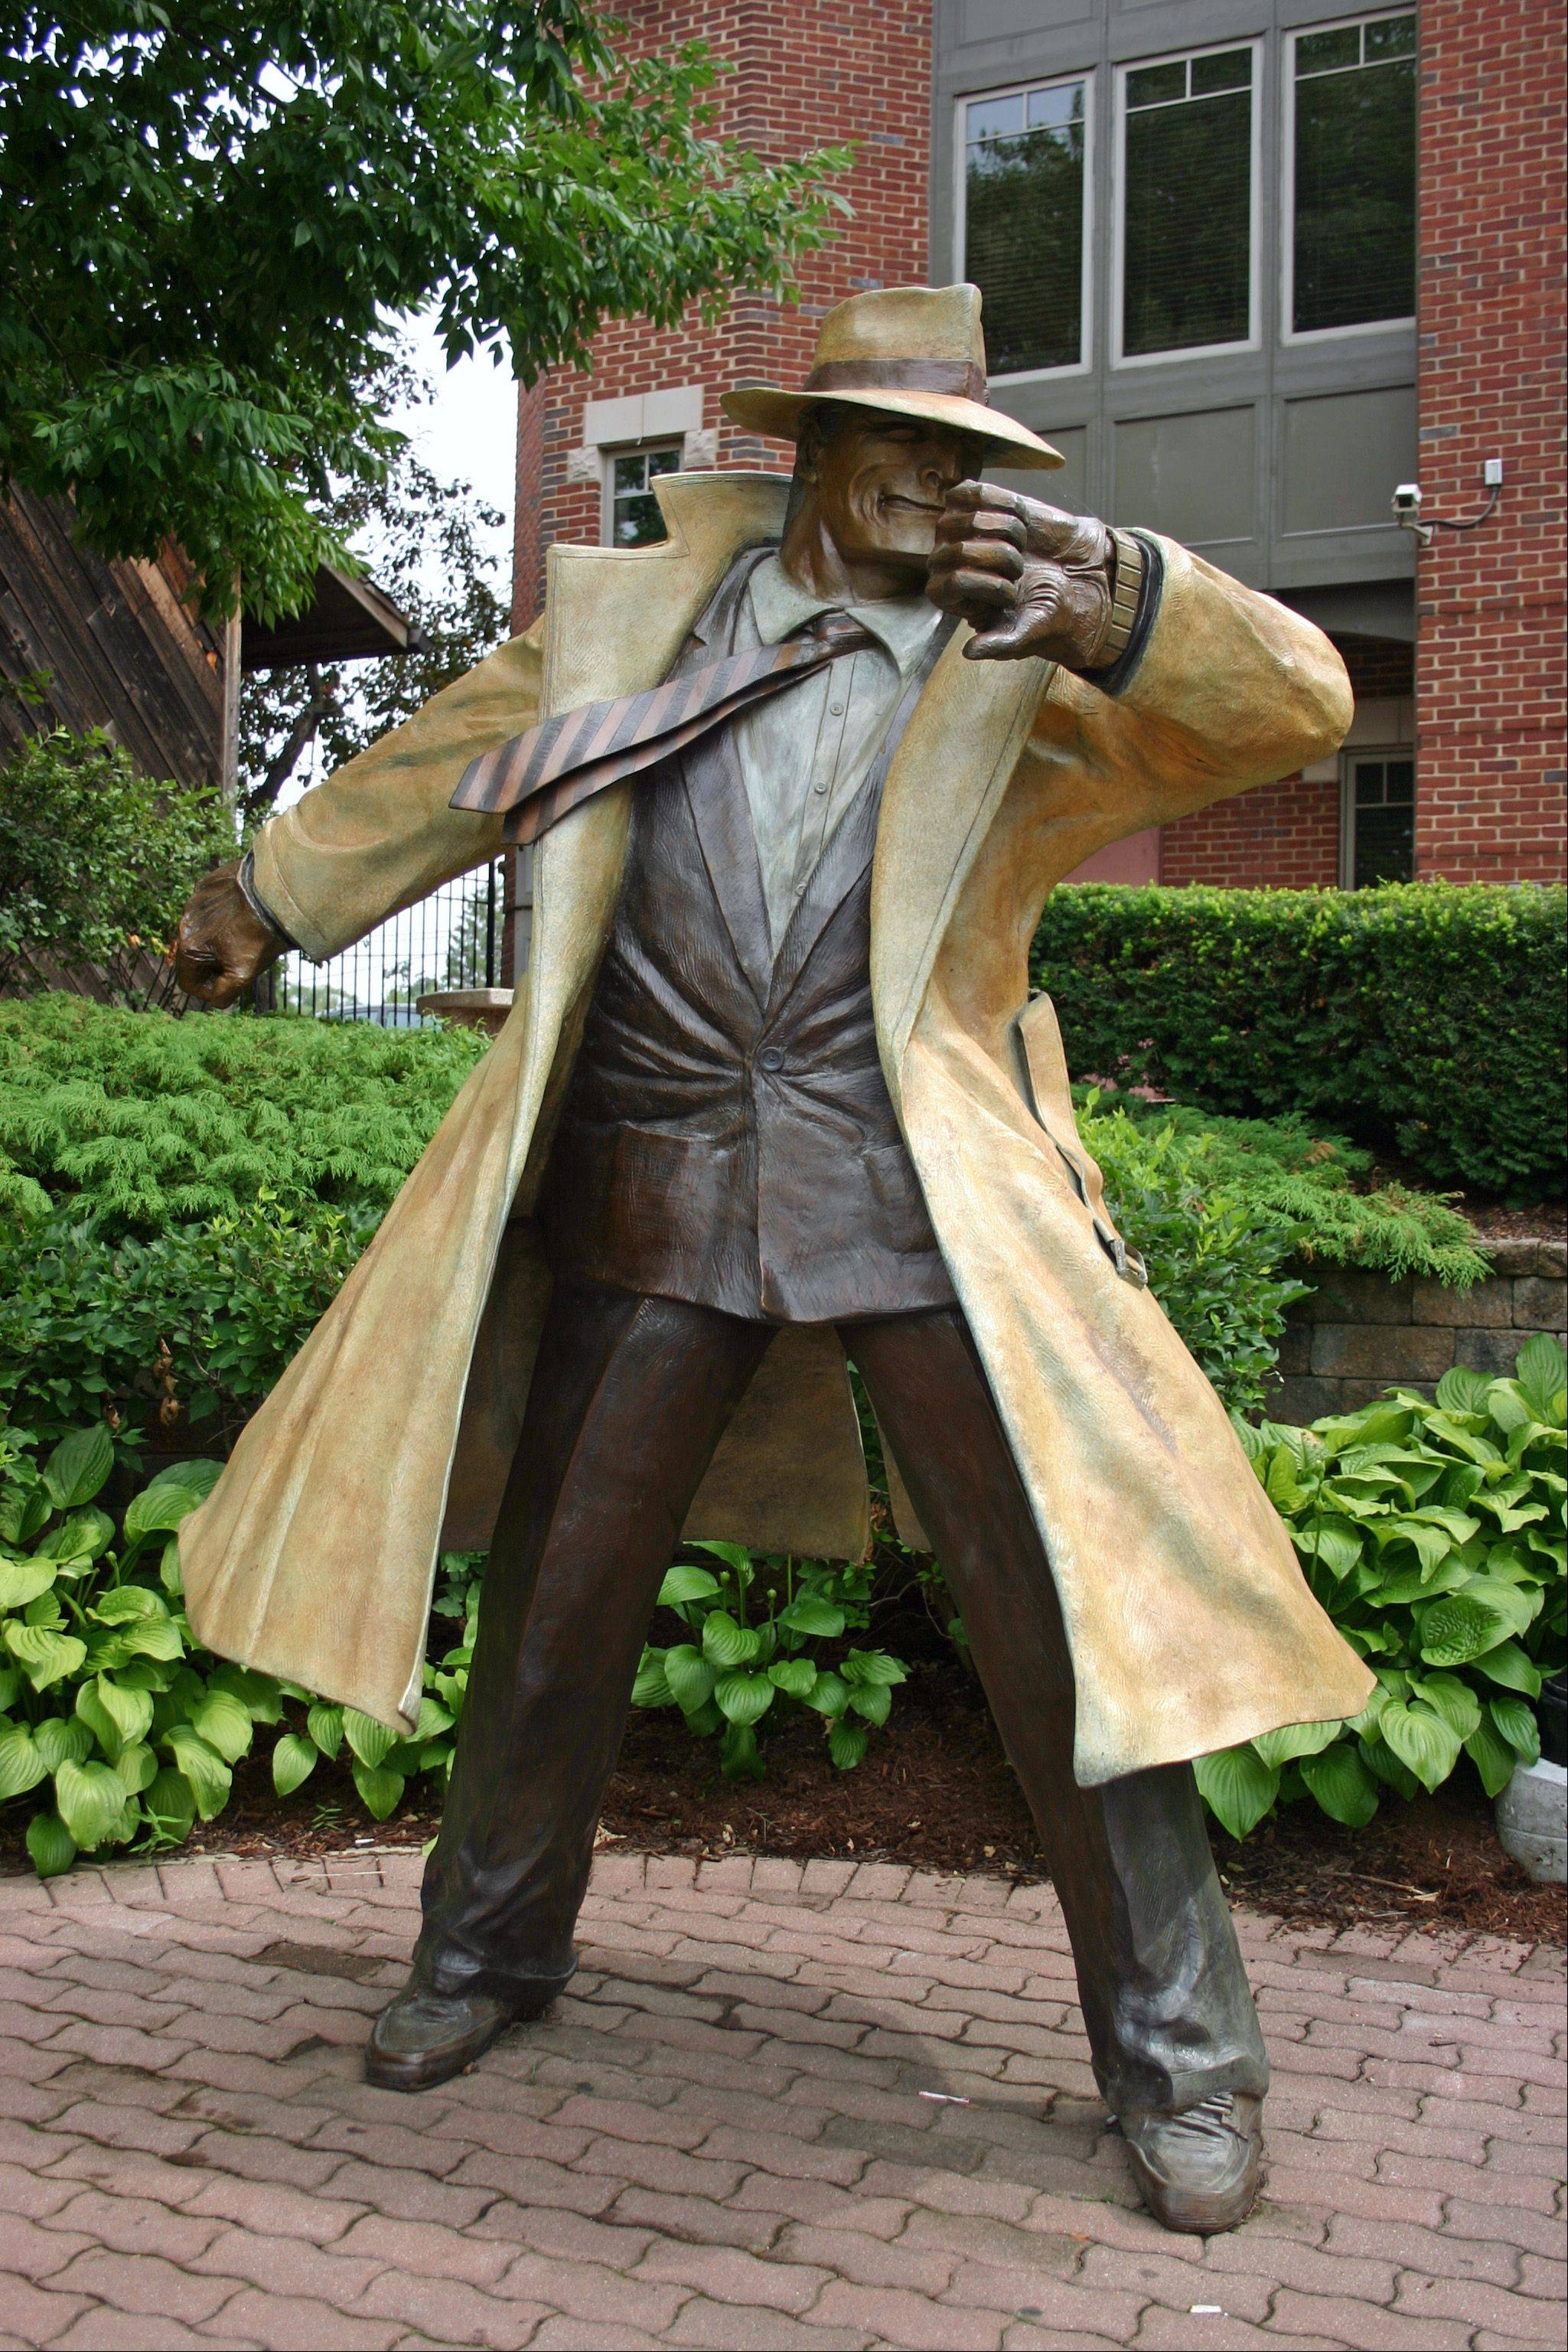 Dick Tracy on the Naperville Riverwalk is part of the Century Walk public art project, about which you can now watch videos thanks to QR codes.